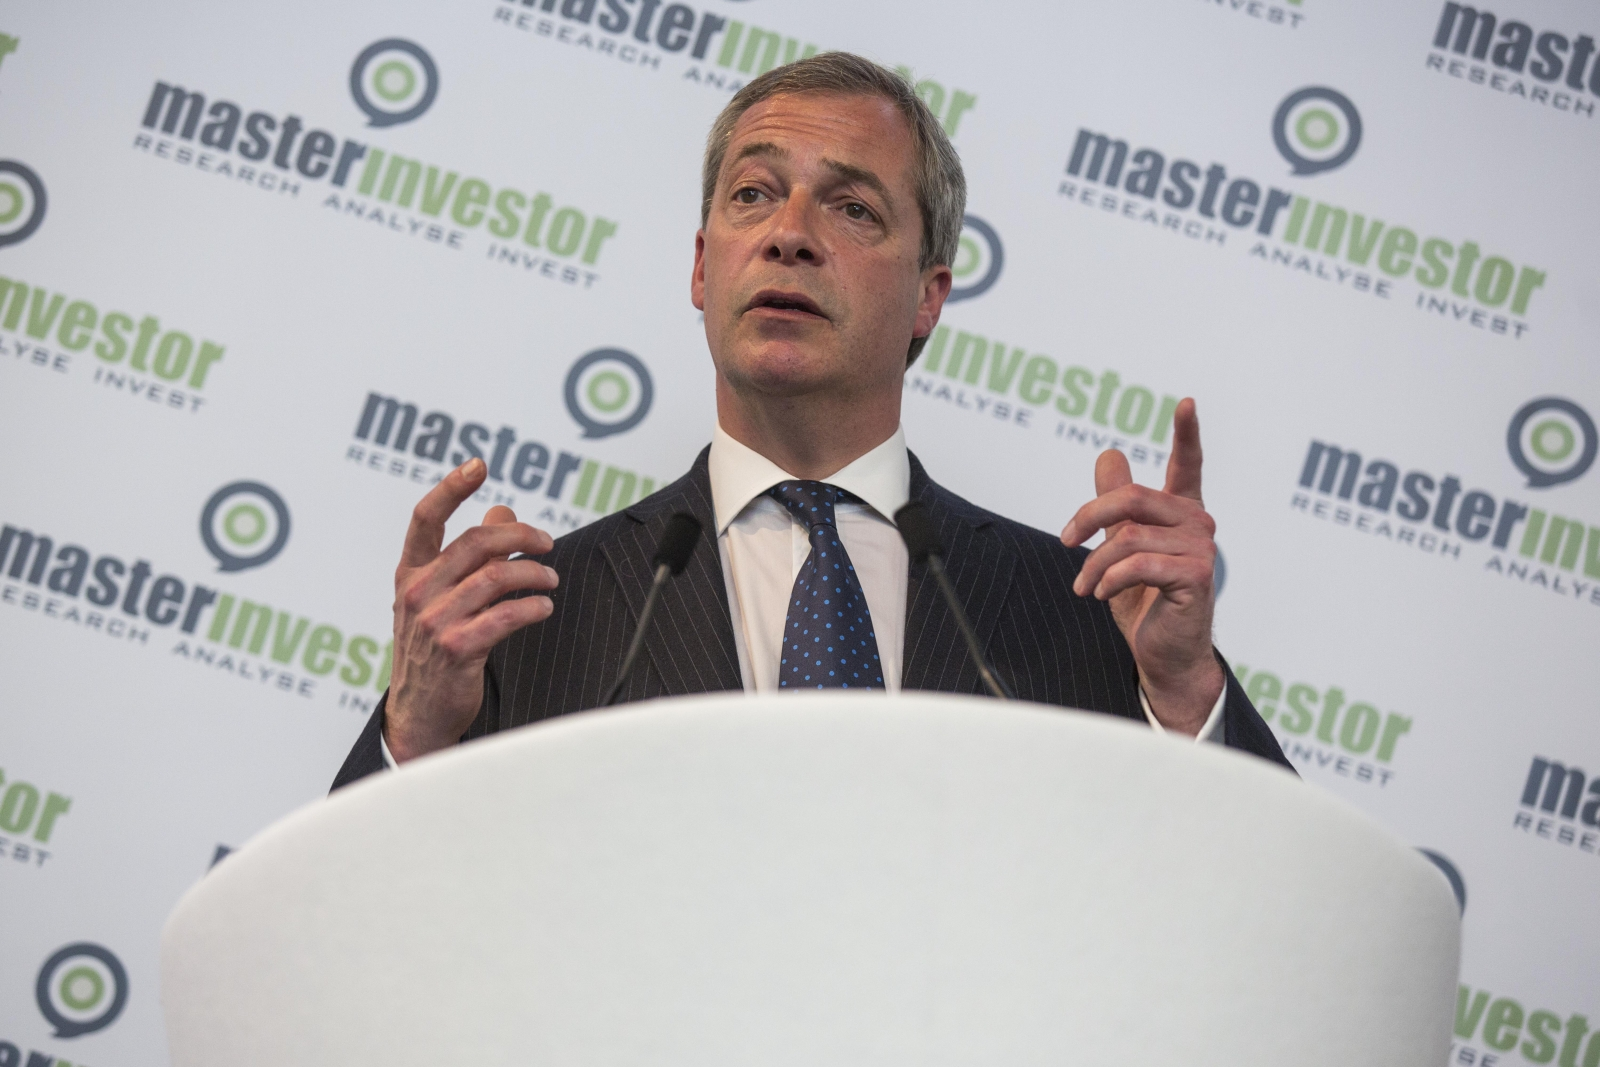 Nigel Farage at the Master Investor show